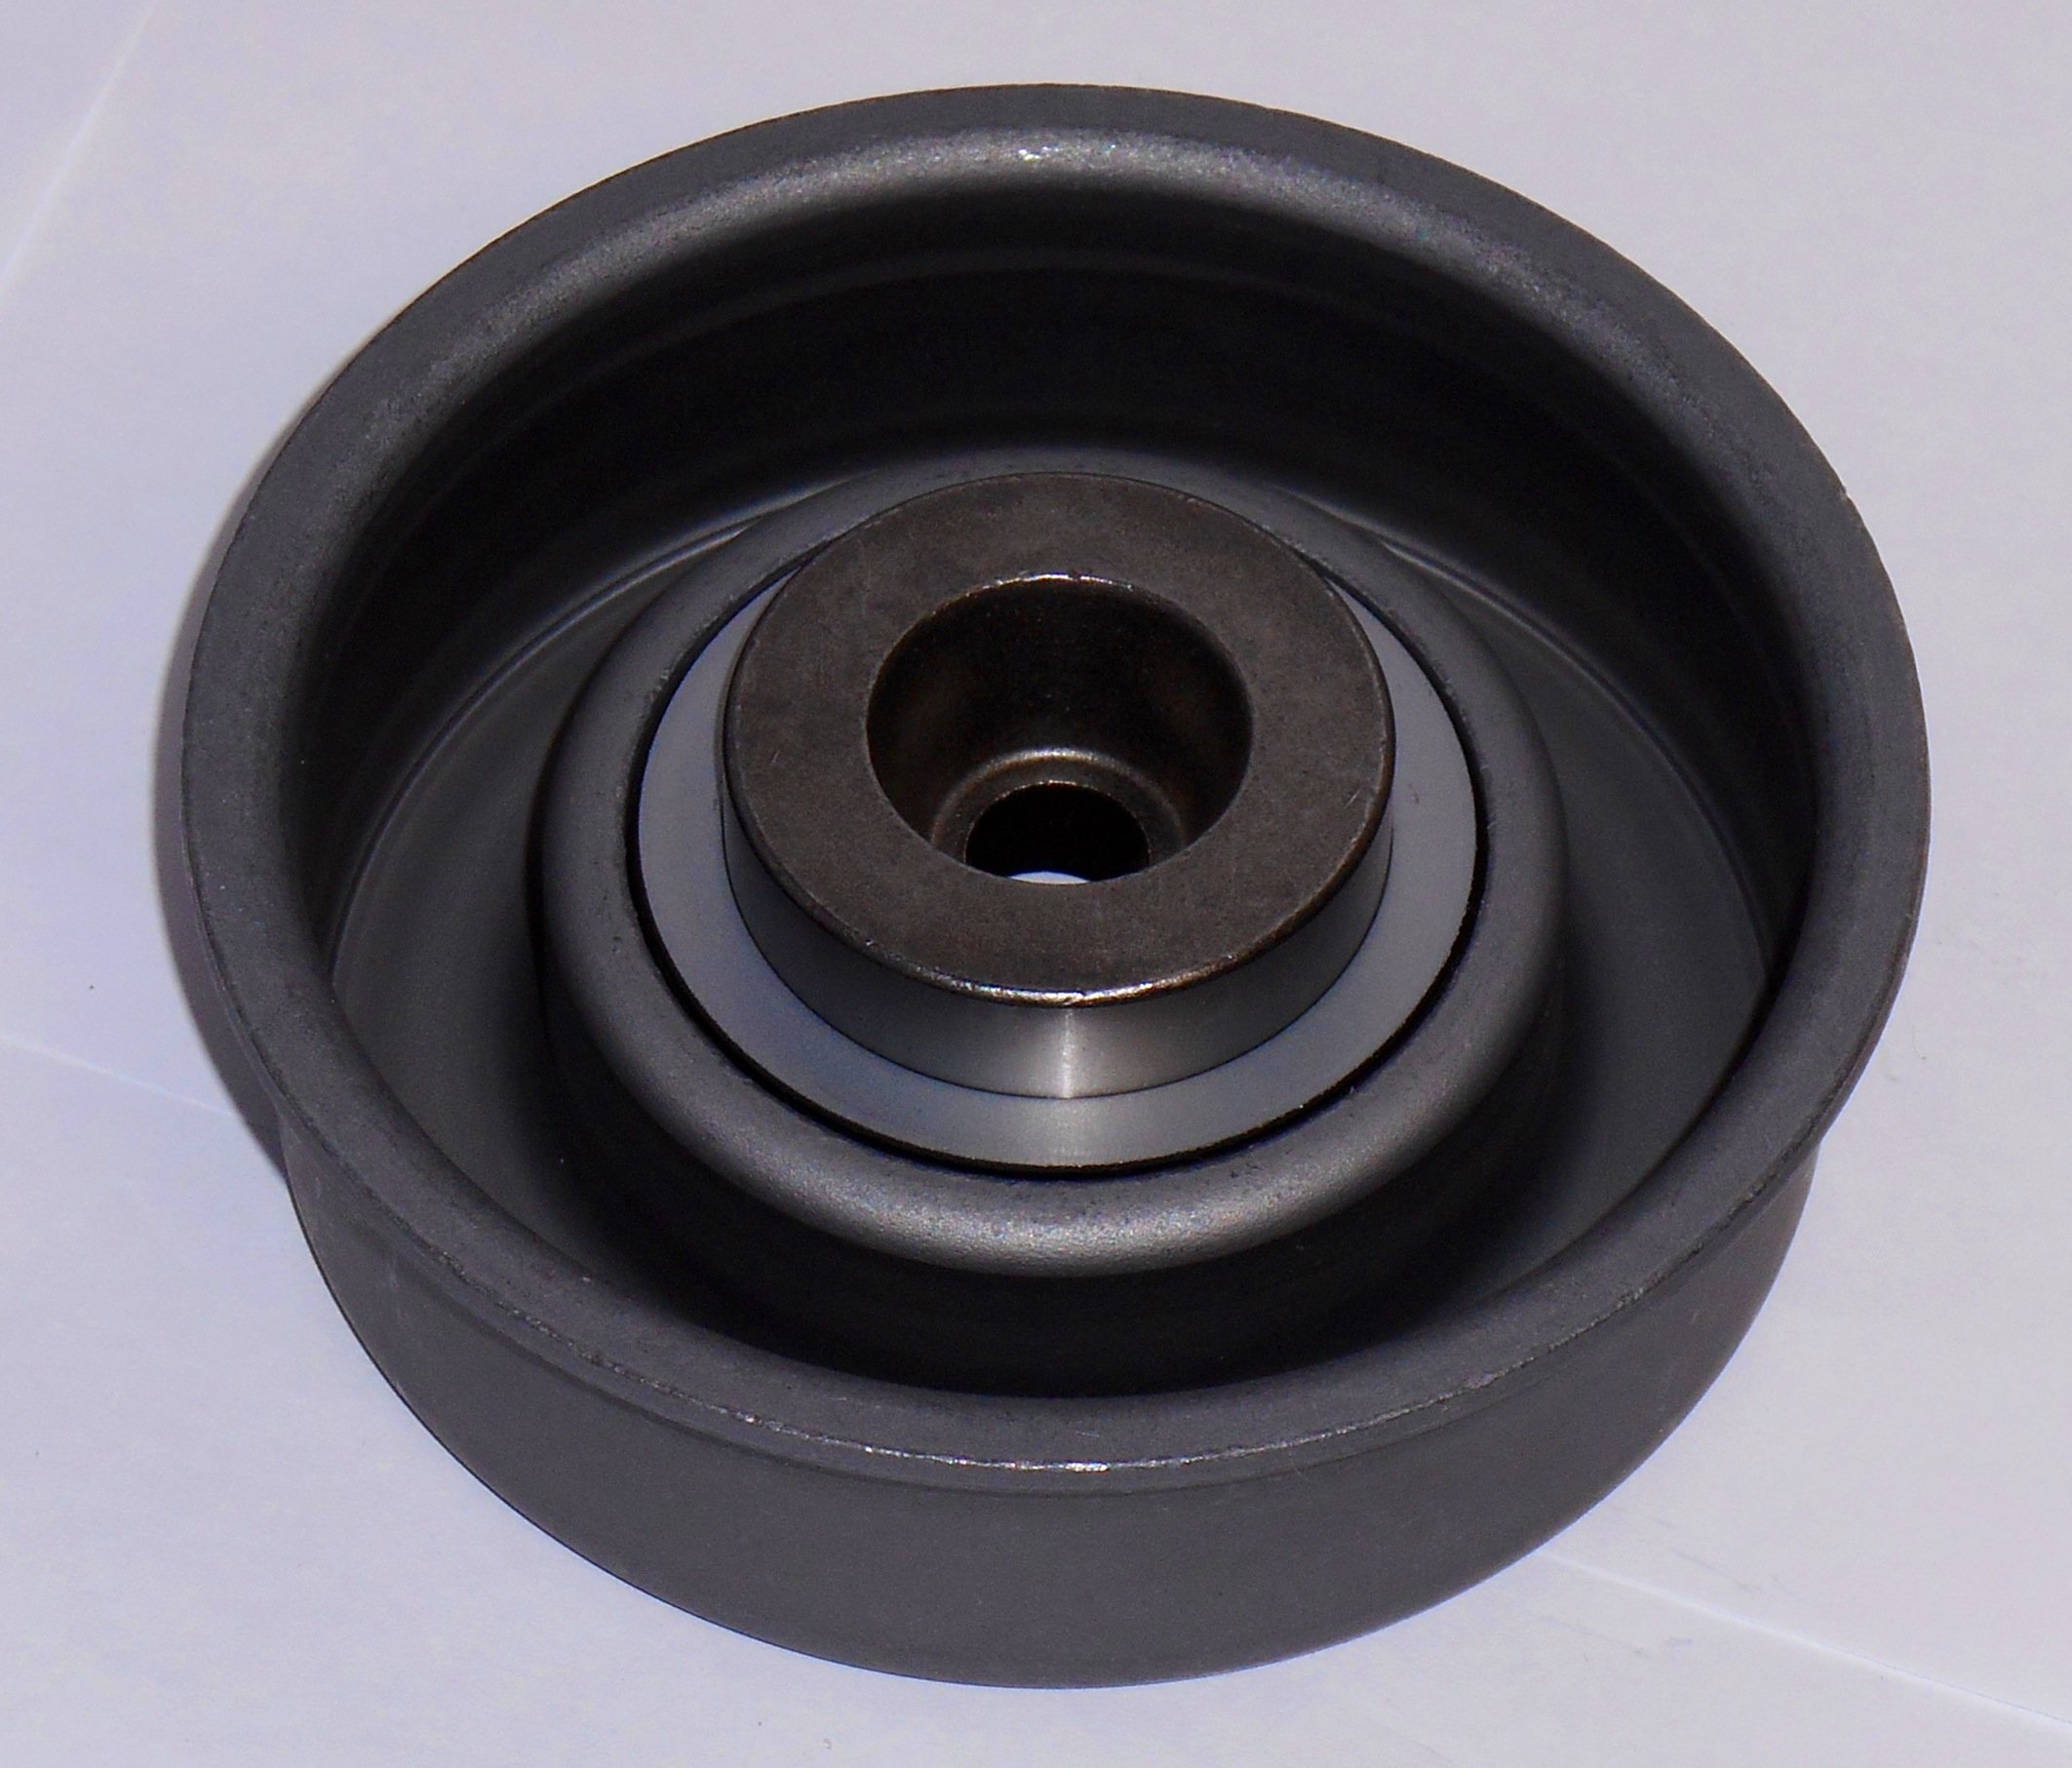 Genuine Mitsubishi Alternator Tensioner Pulley MD308882 MONTERO SPORT 1997 1998 1999 2000 2001 2002 2003 2004